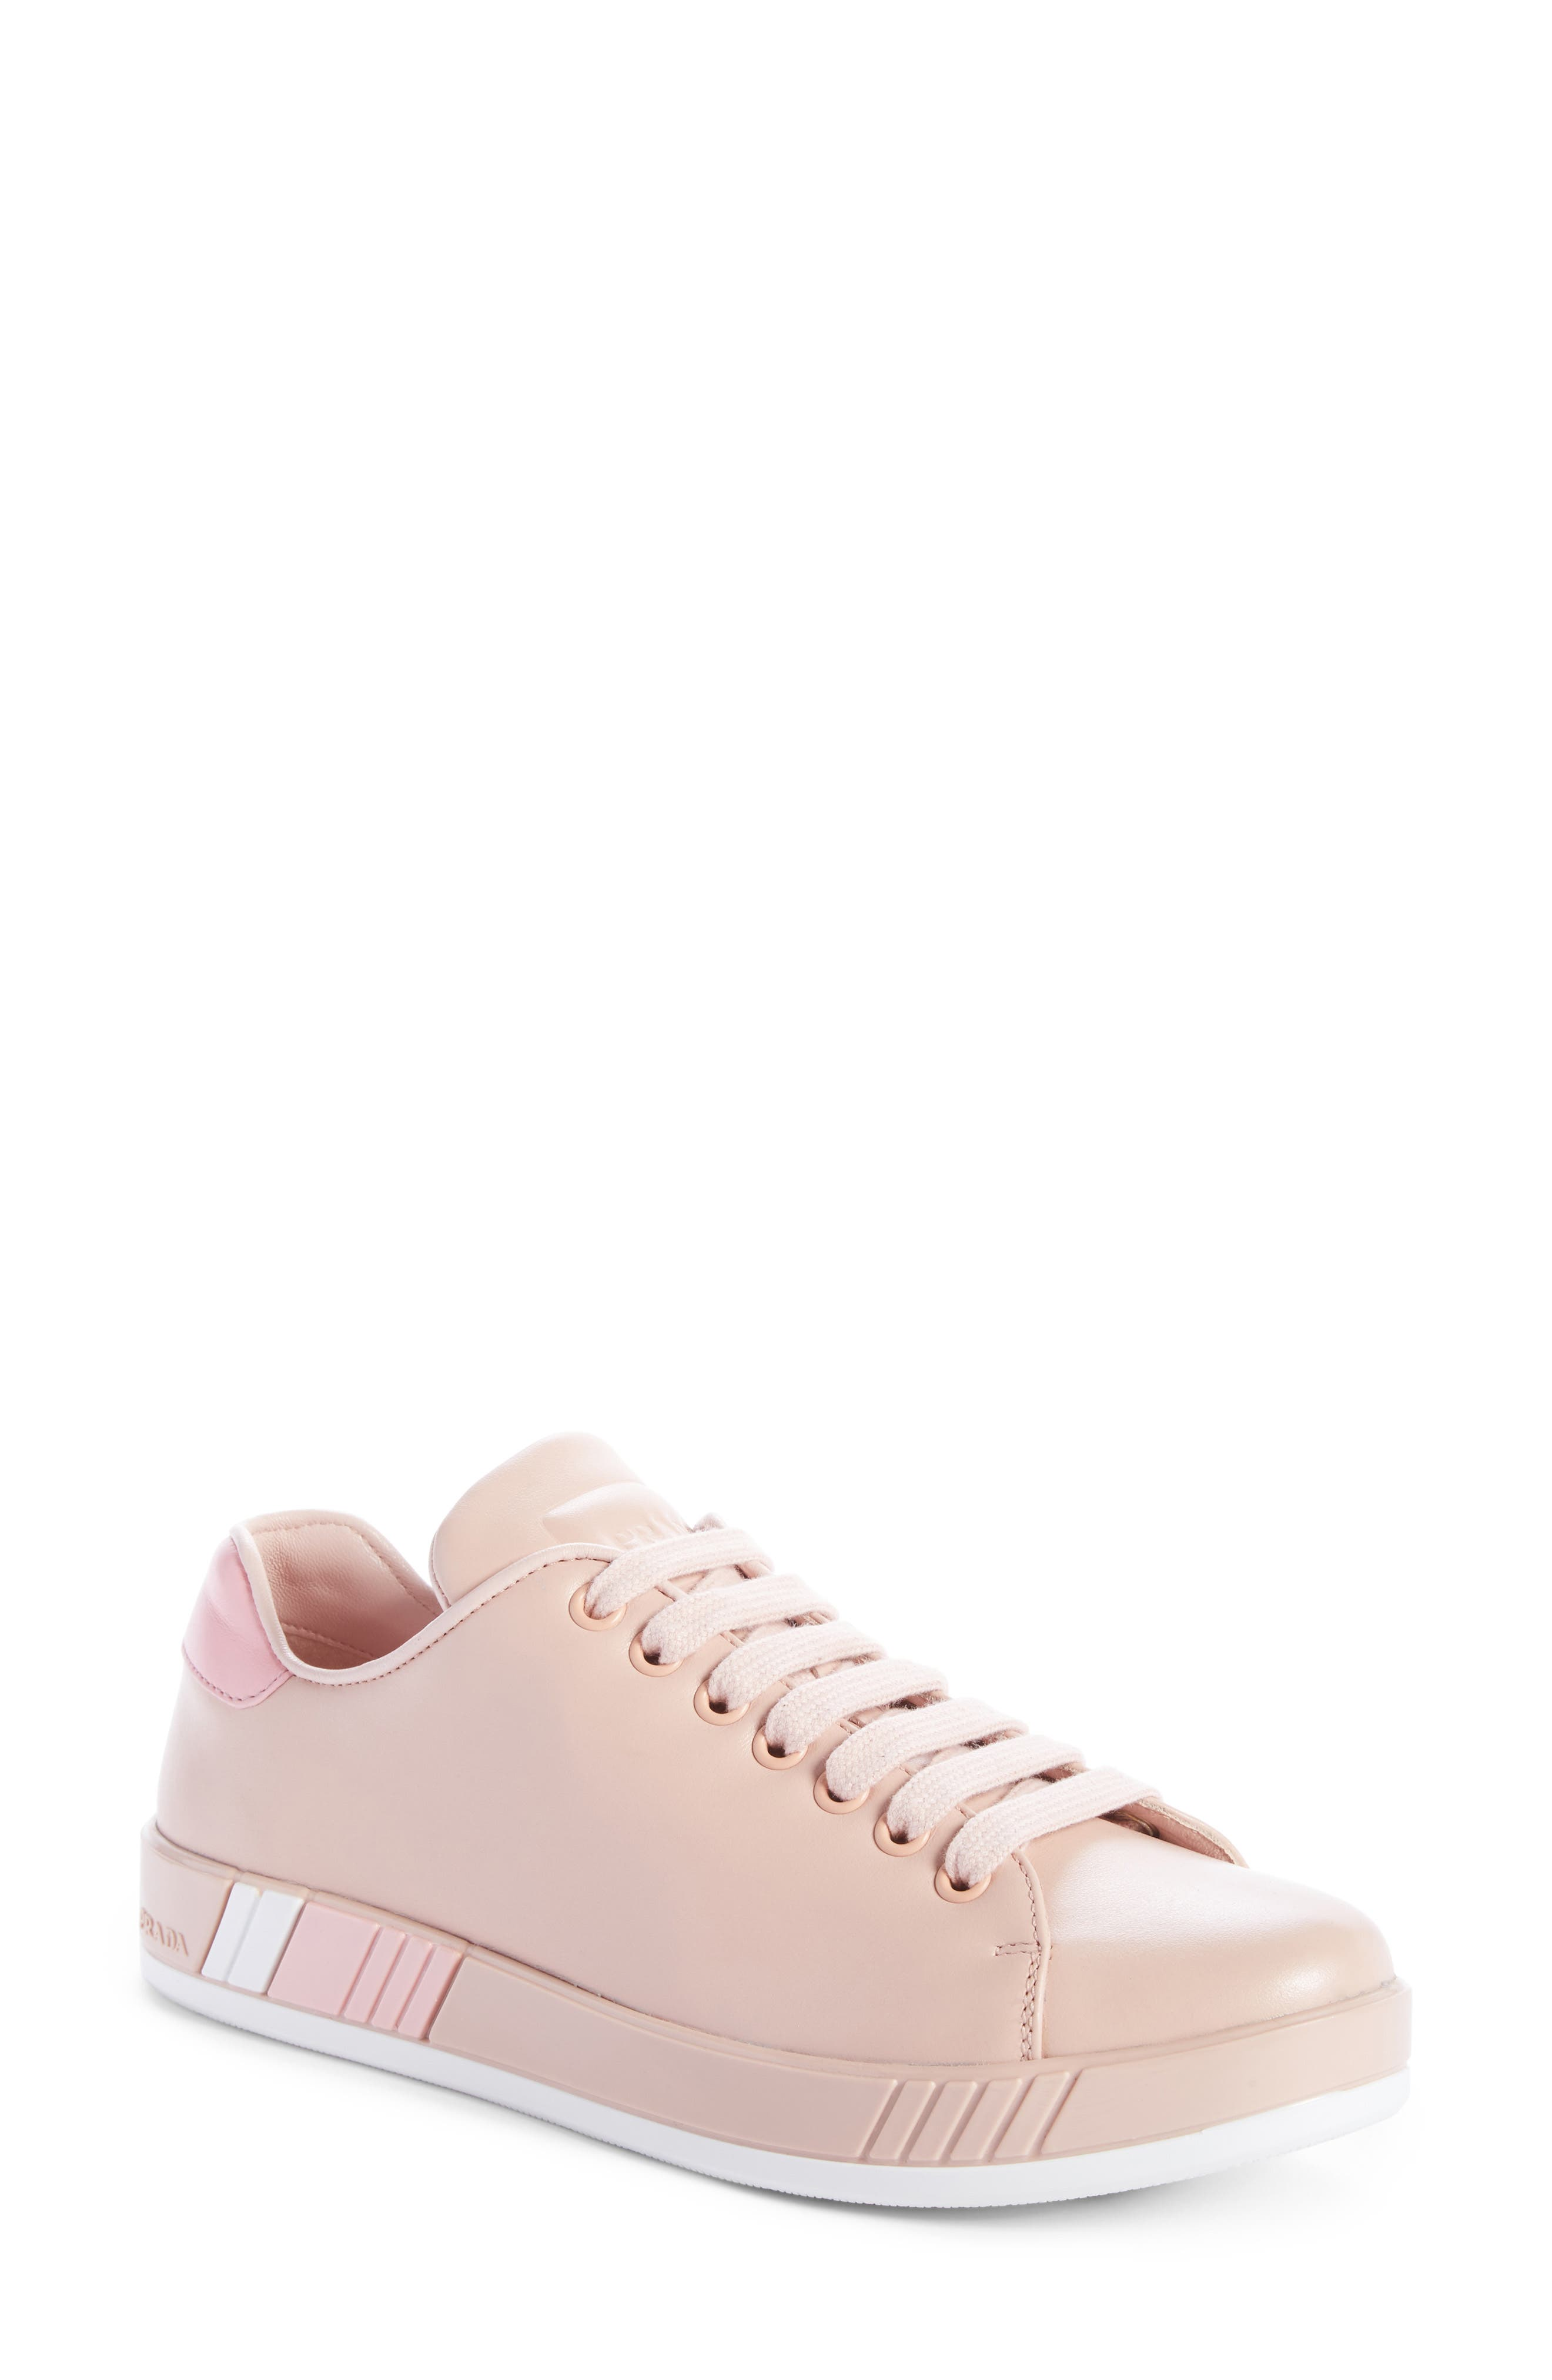 Prada Low Top Sneaker (Women)